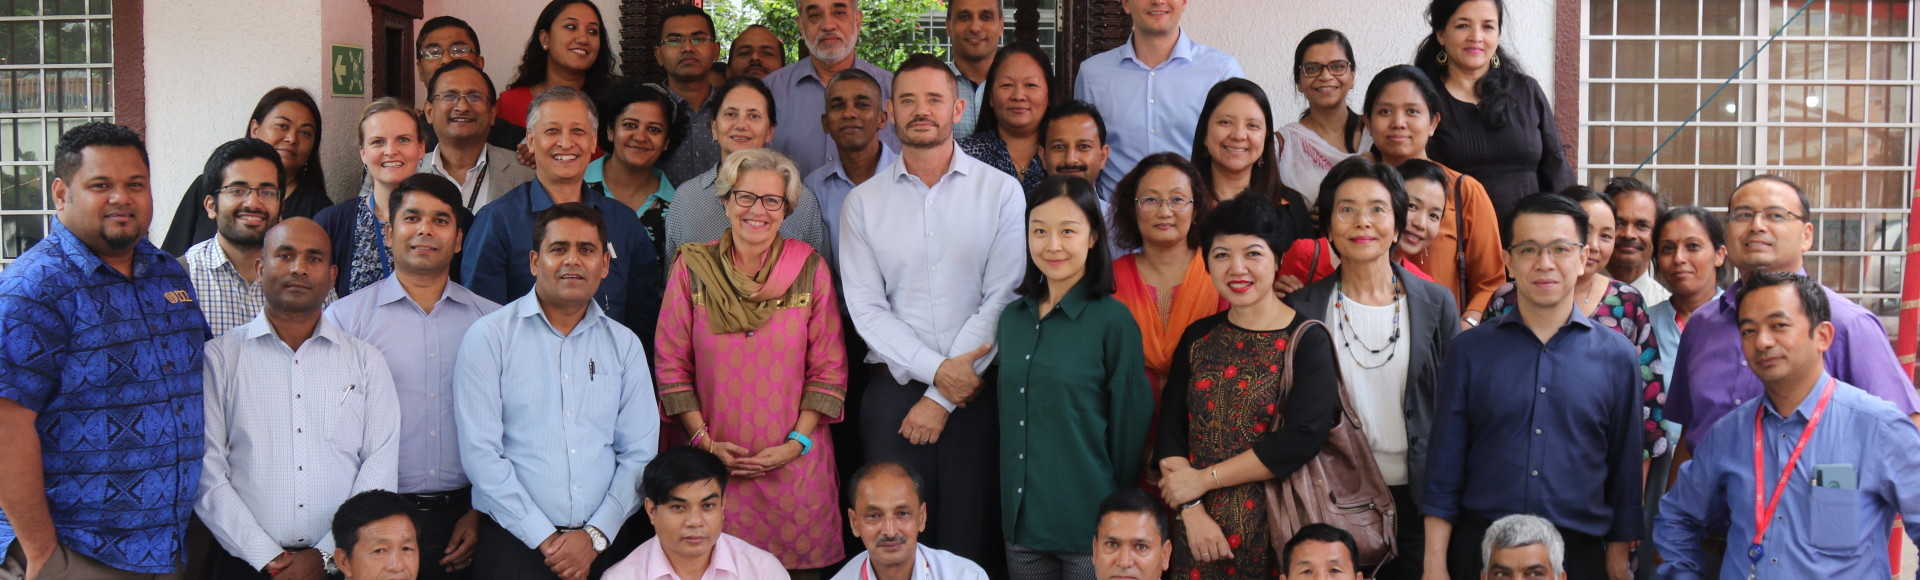 Regional Committee of the ILO Staff Union, Kathmandu from 9 to 13 September 2019